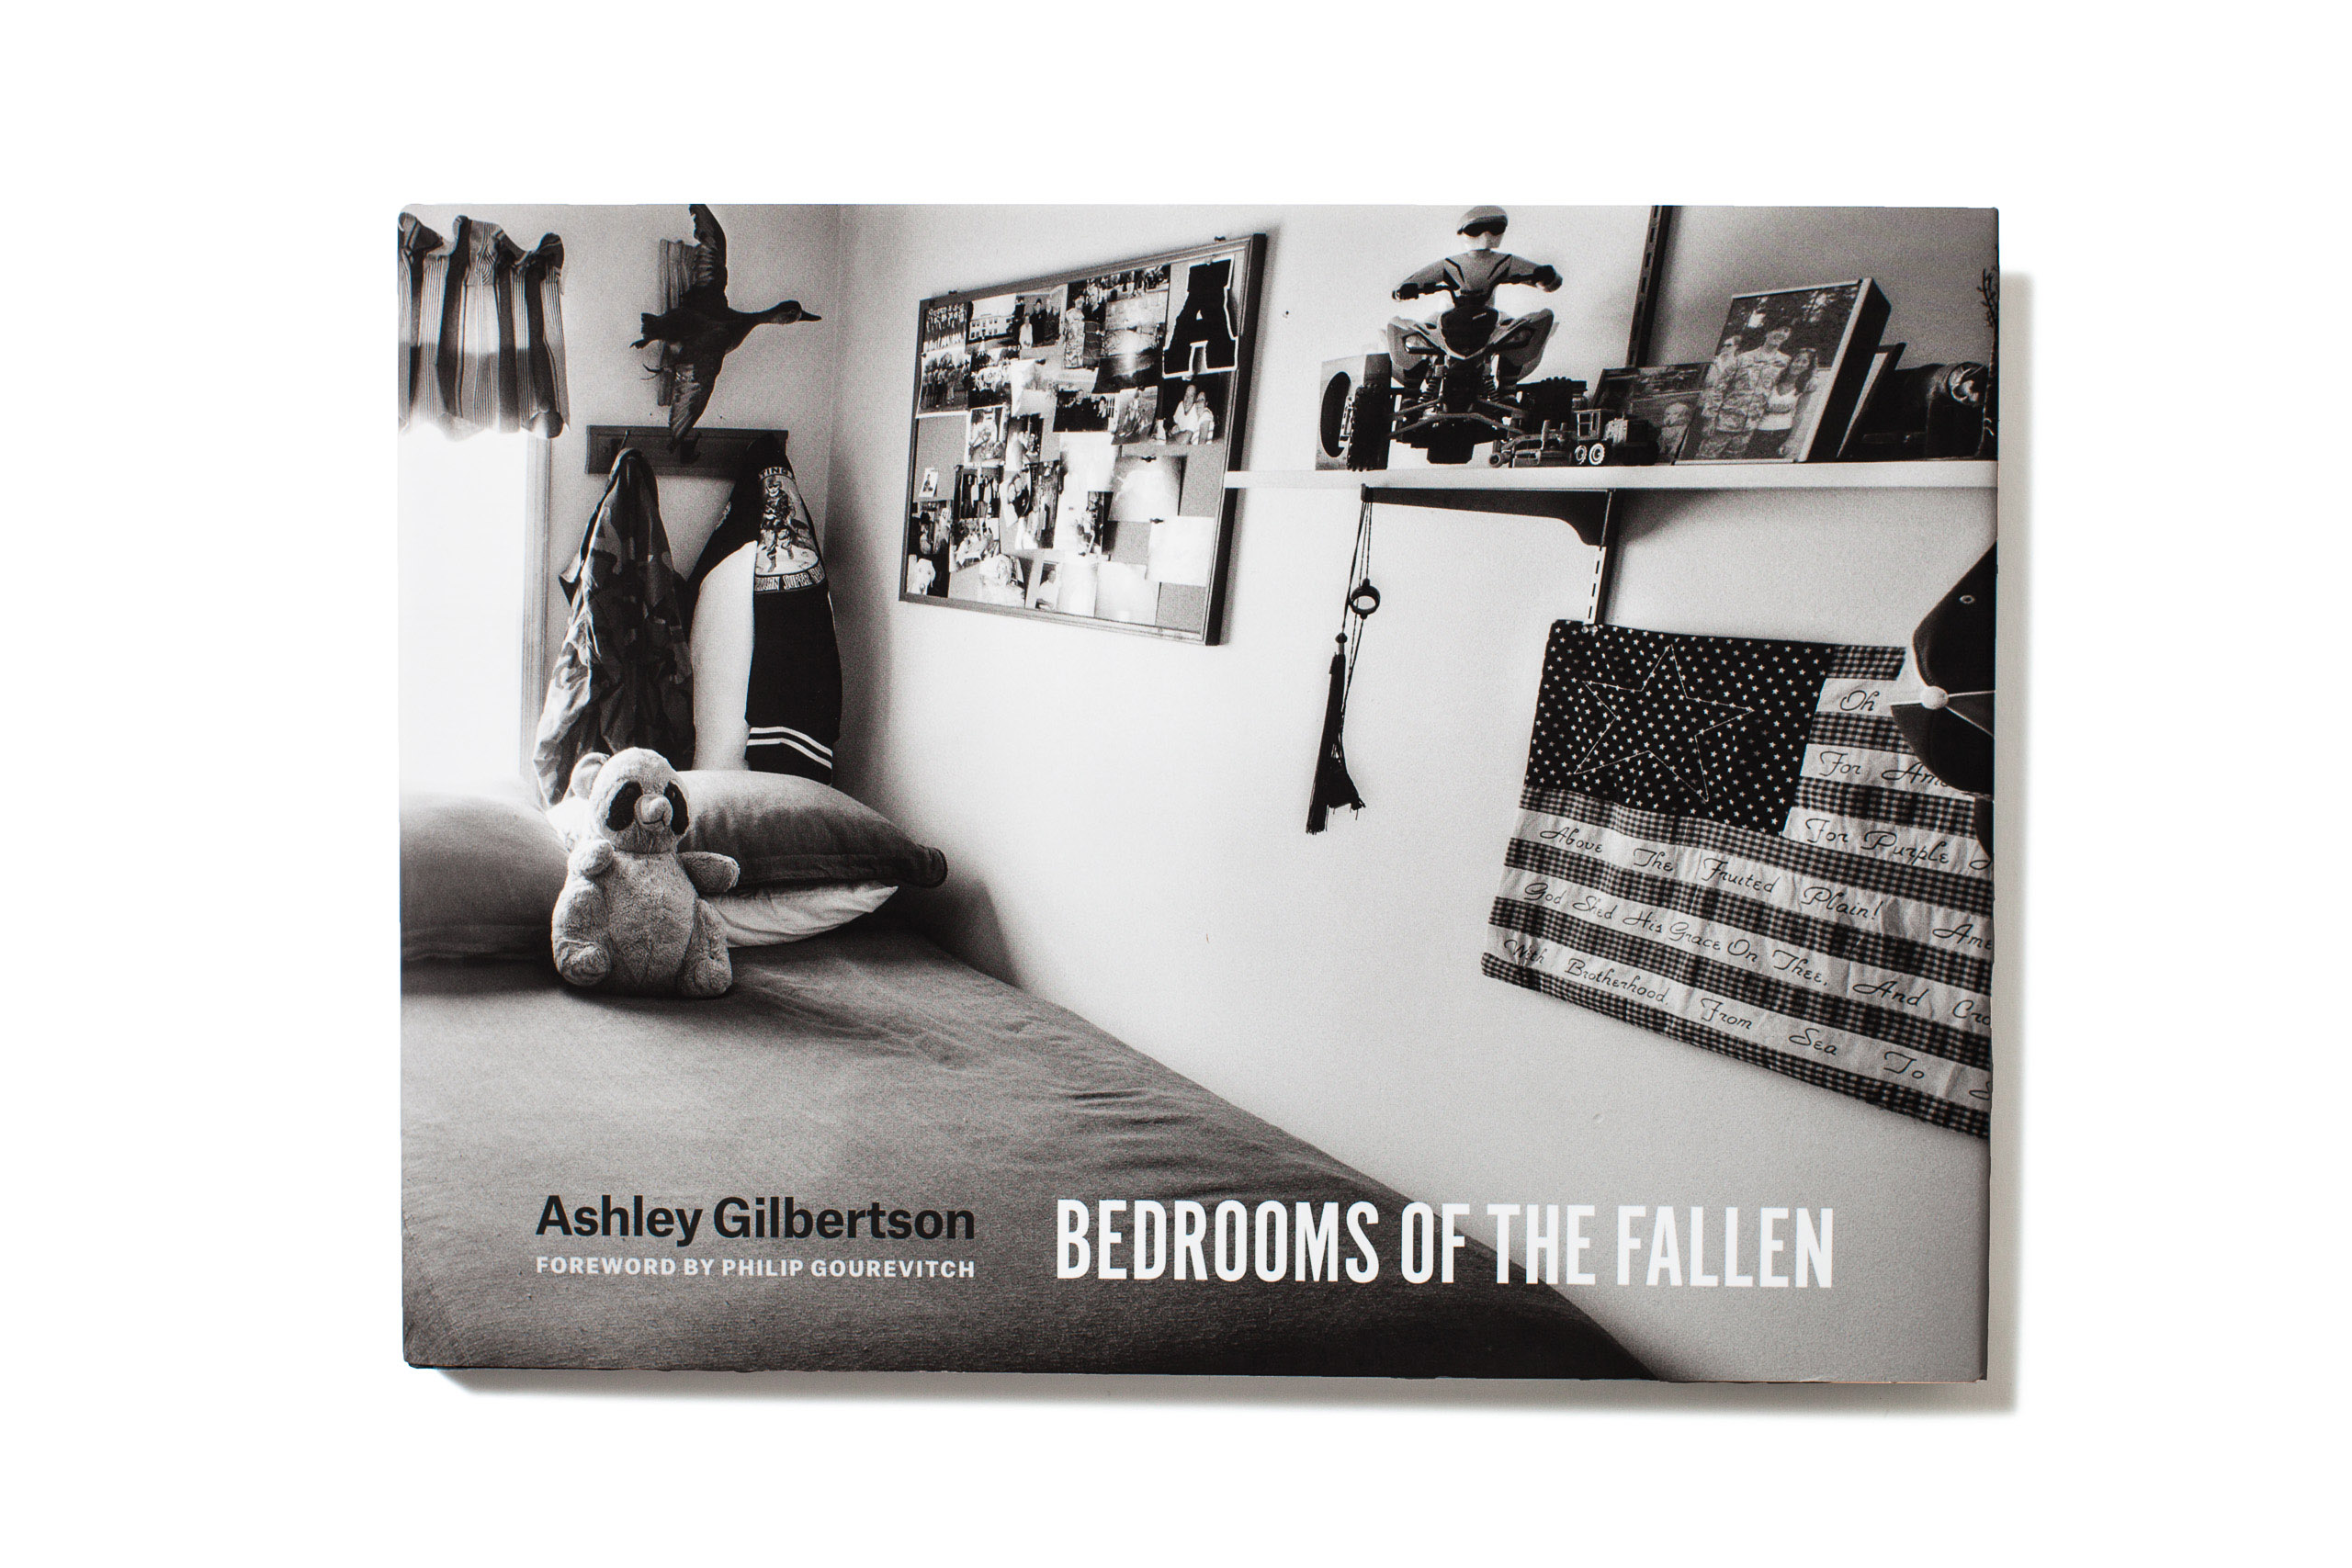 Bedrooms of the Fallen The University of Chicago Press, selected by By Josh Raab, Freelance Photo Editor, TIME.com